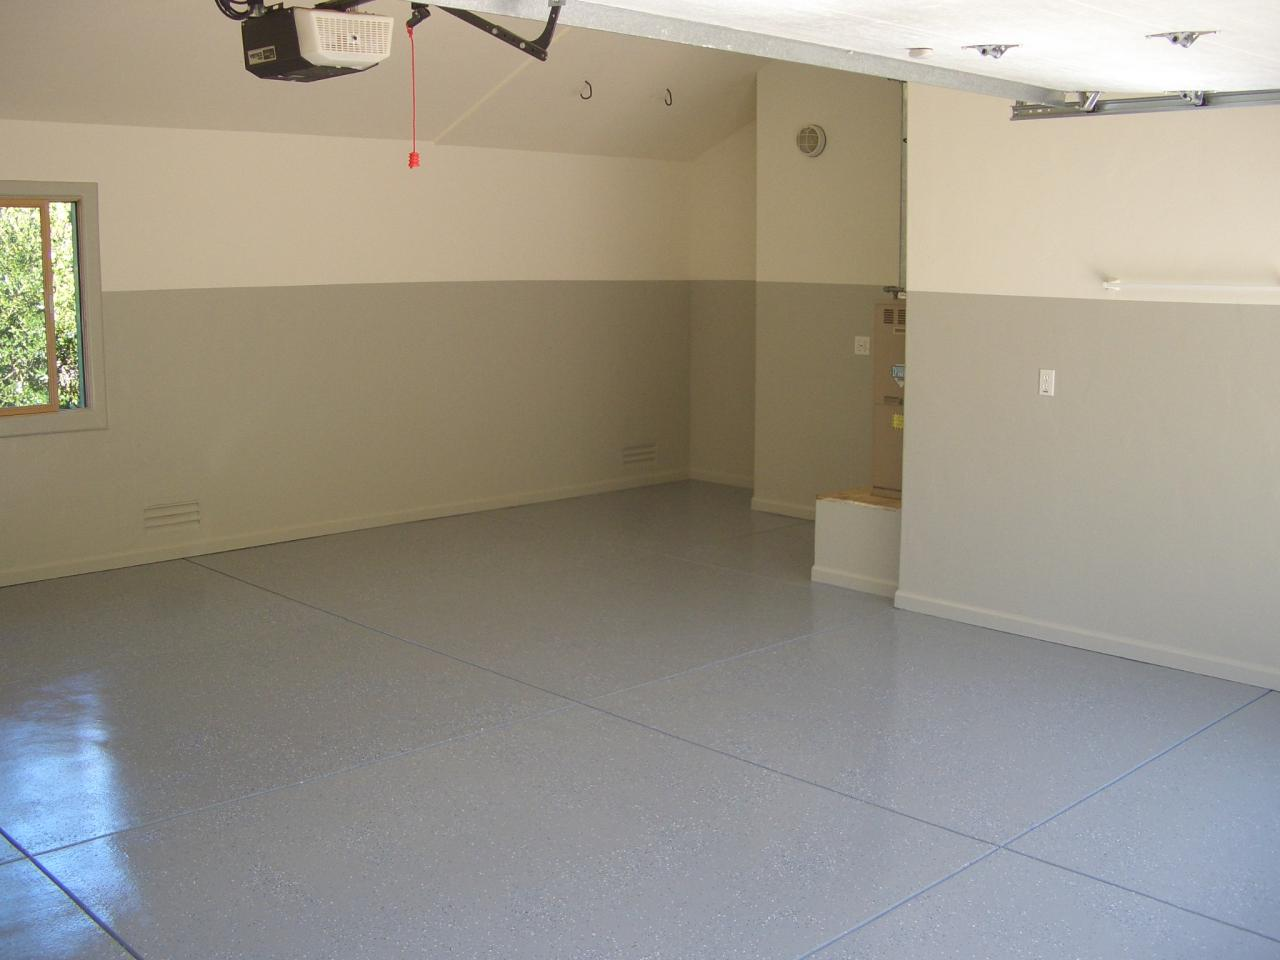 beautiful garage tiles flooring and floor decortempting gradegarage your for floors designs idea tempting are commercial gladiator epoxy gorilla review that home furniture